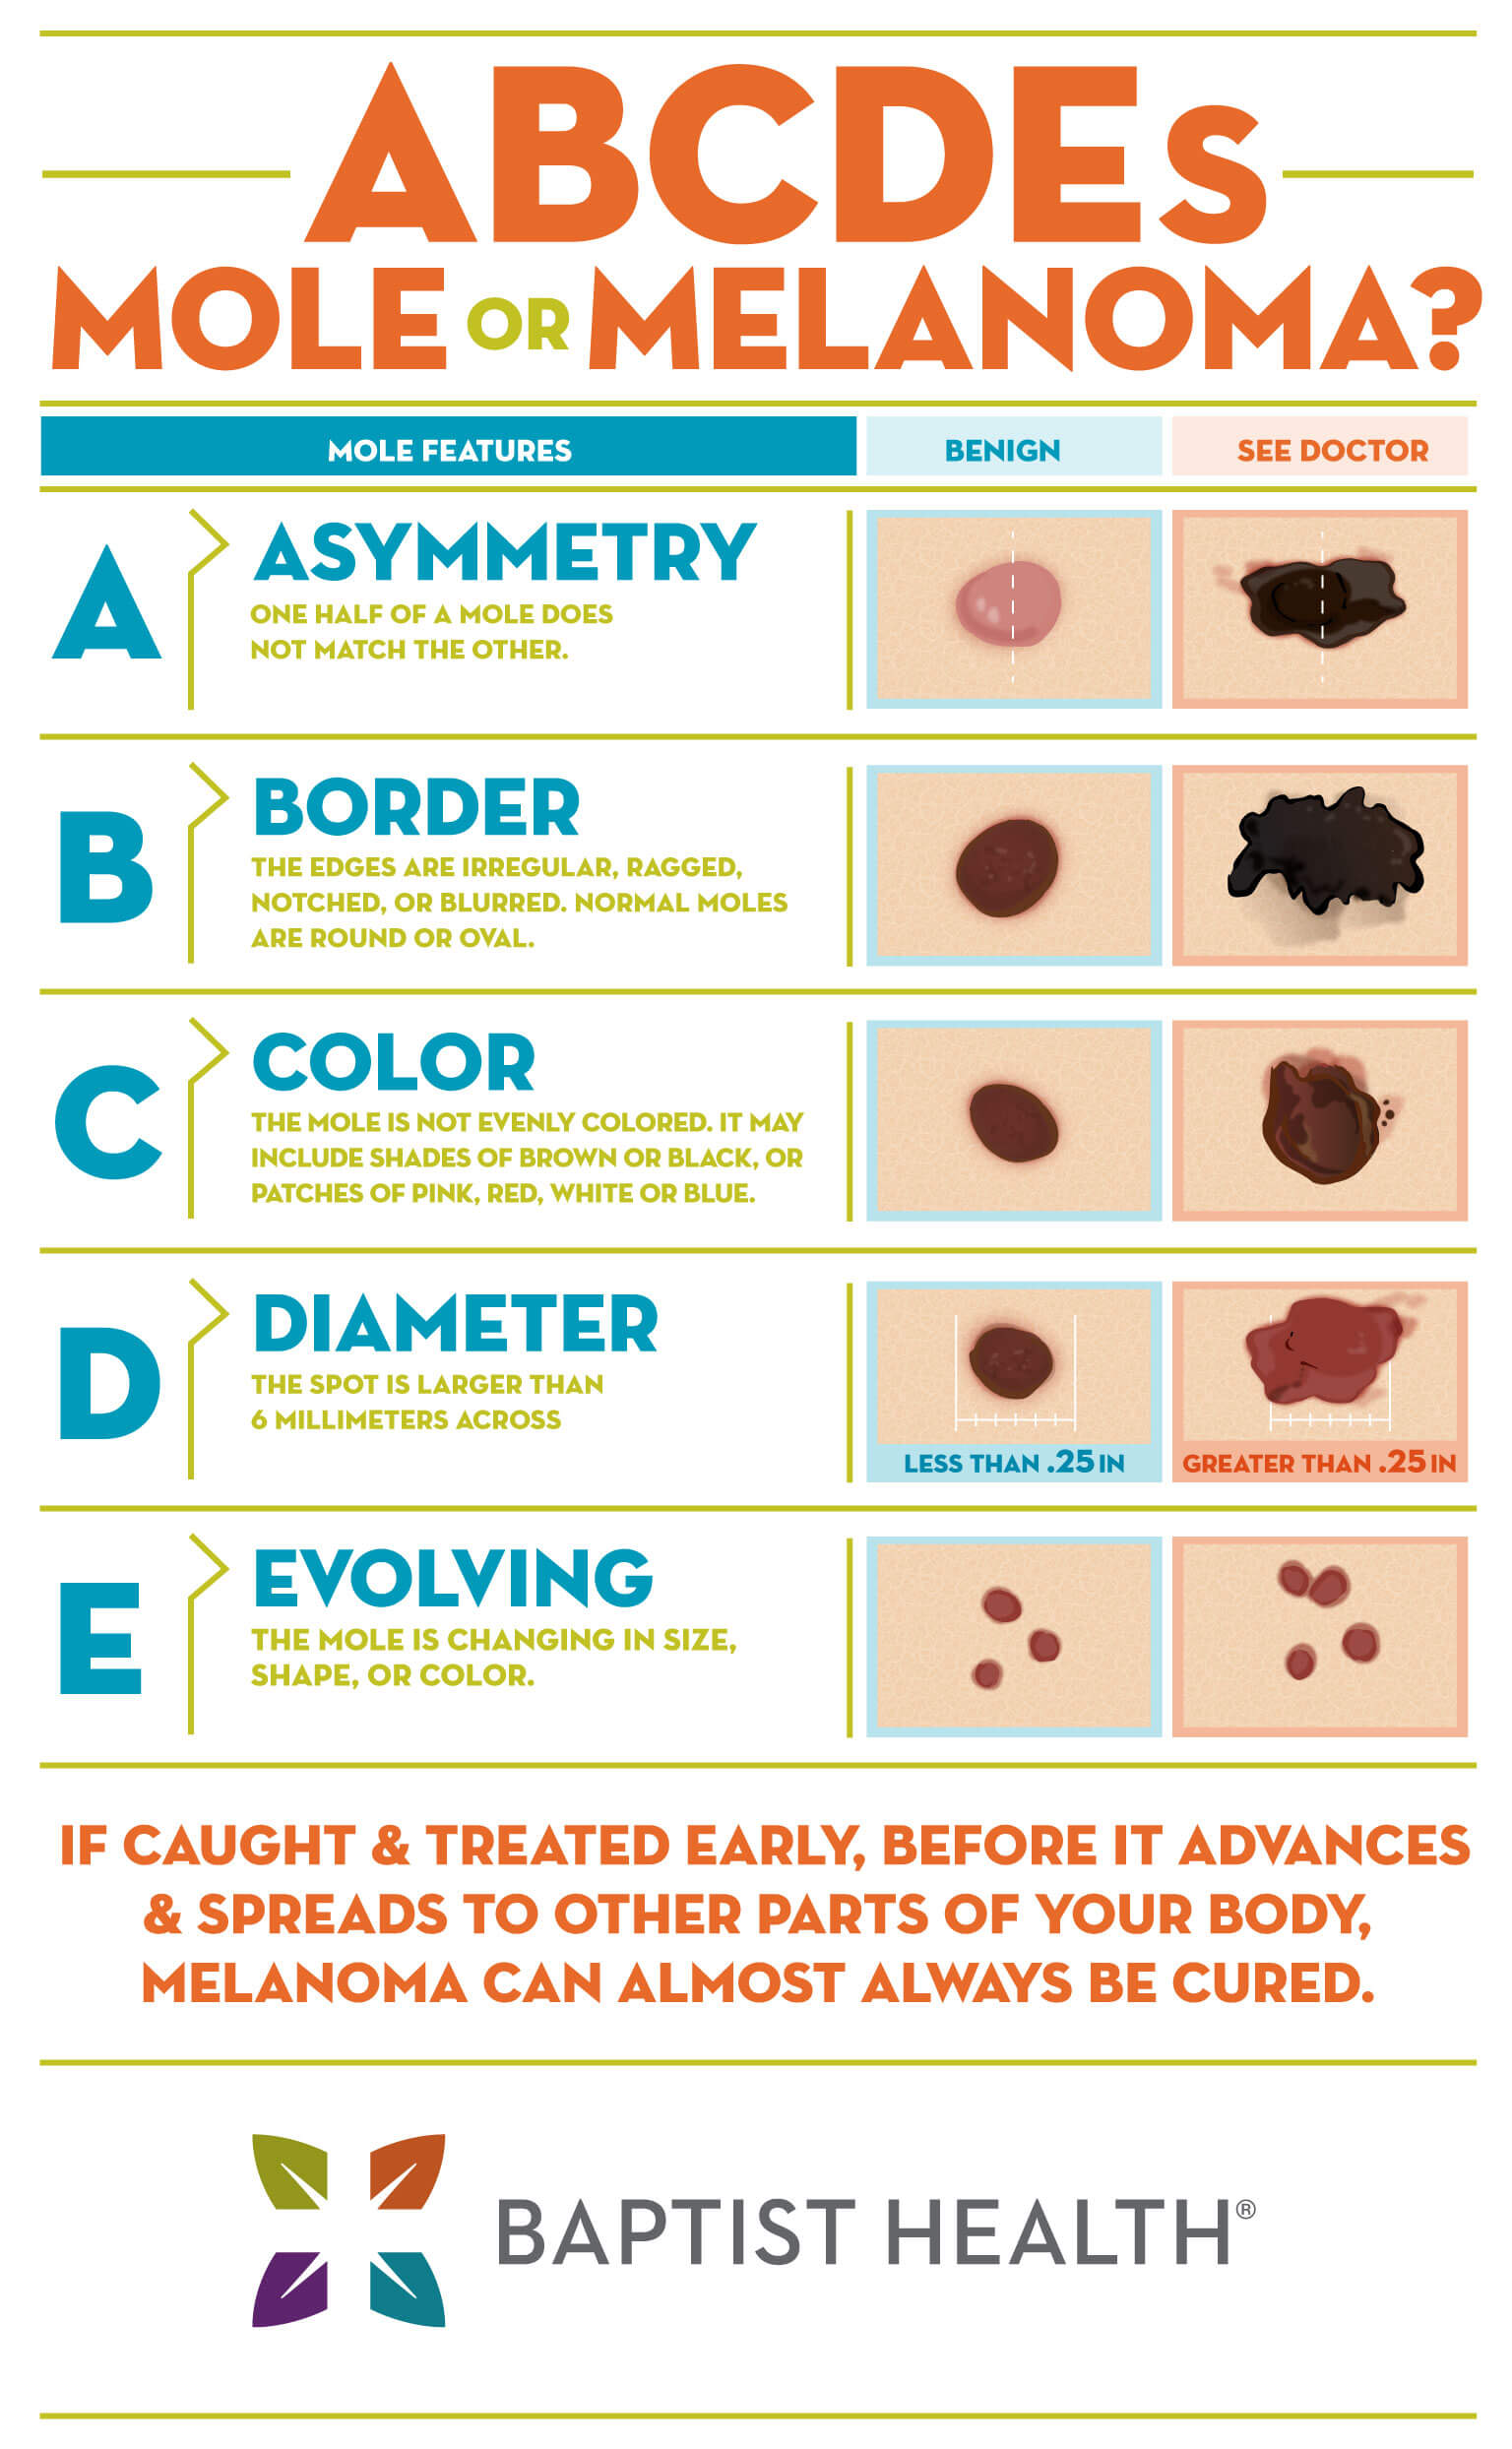 ABCDE's of melanoma